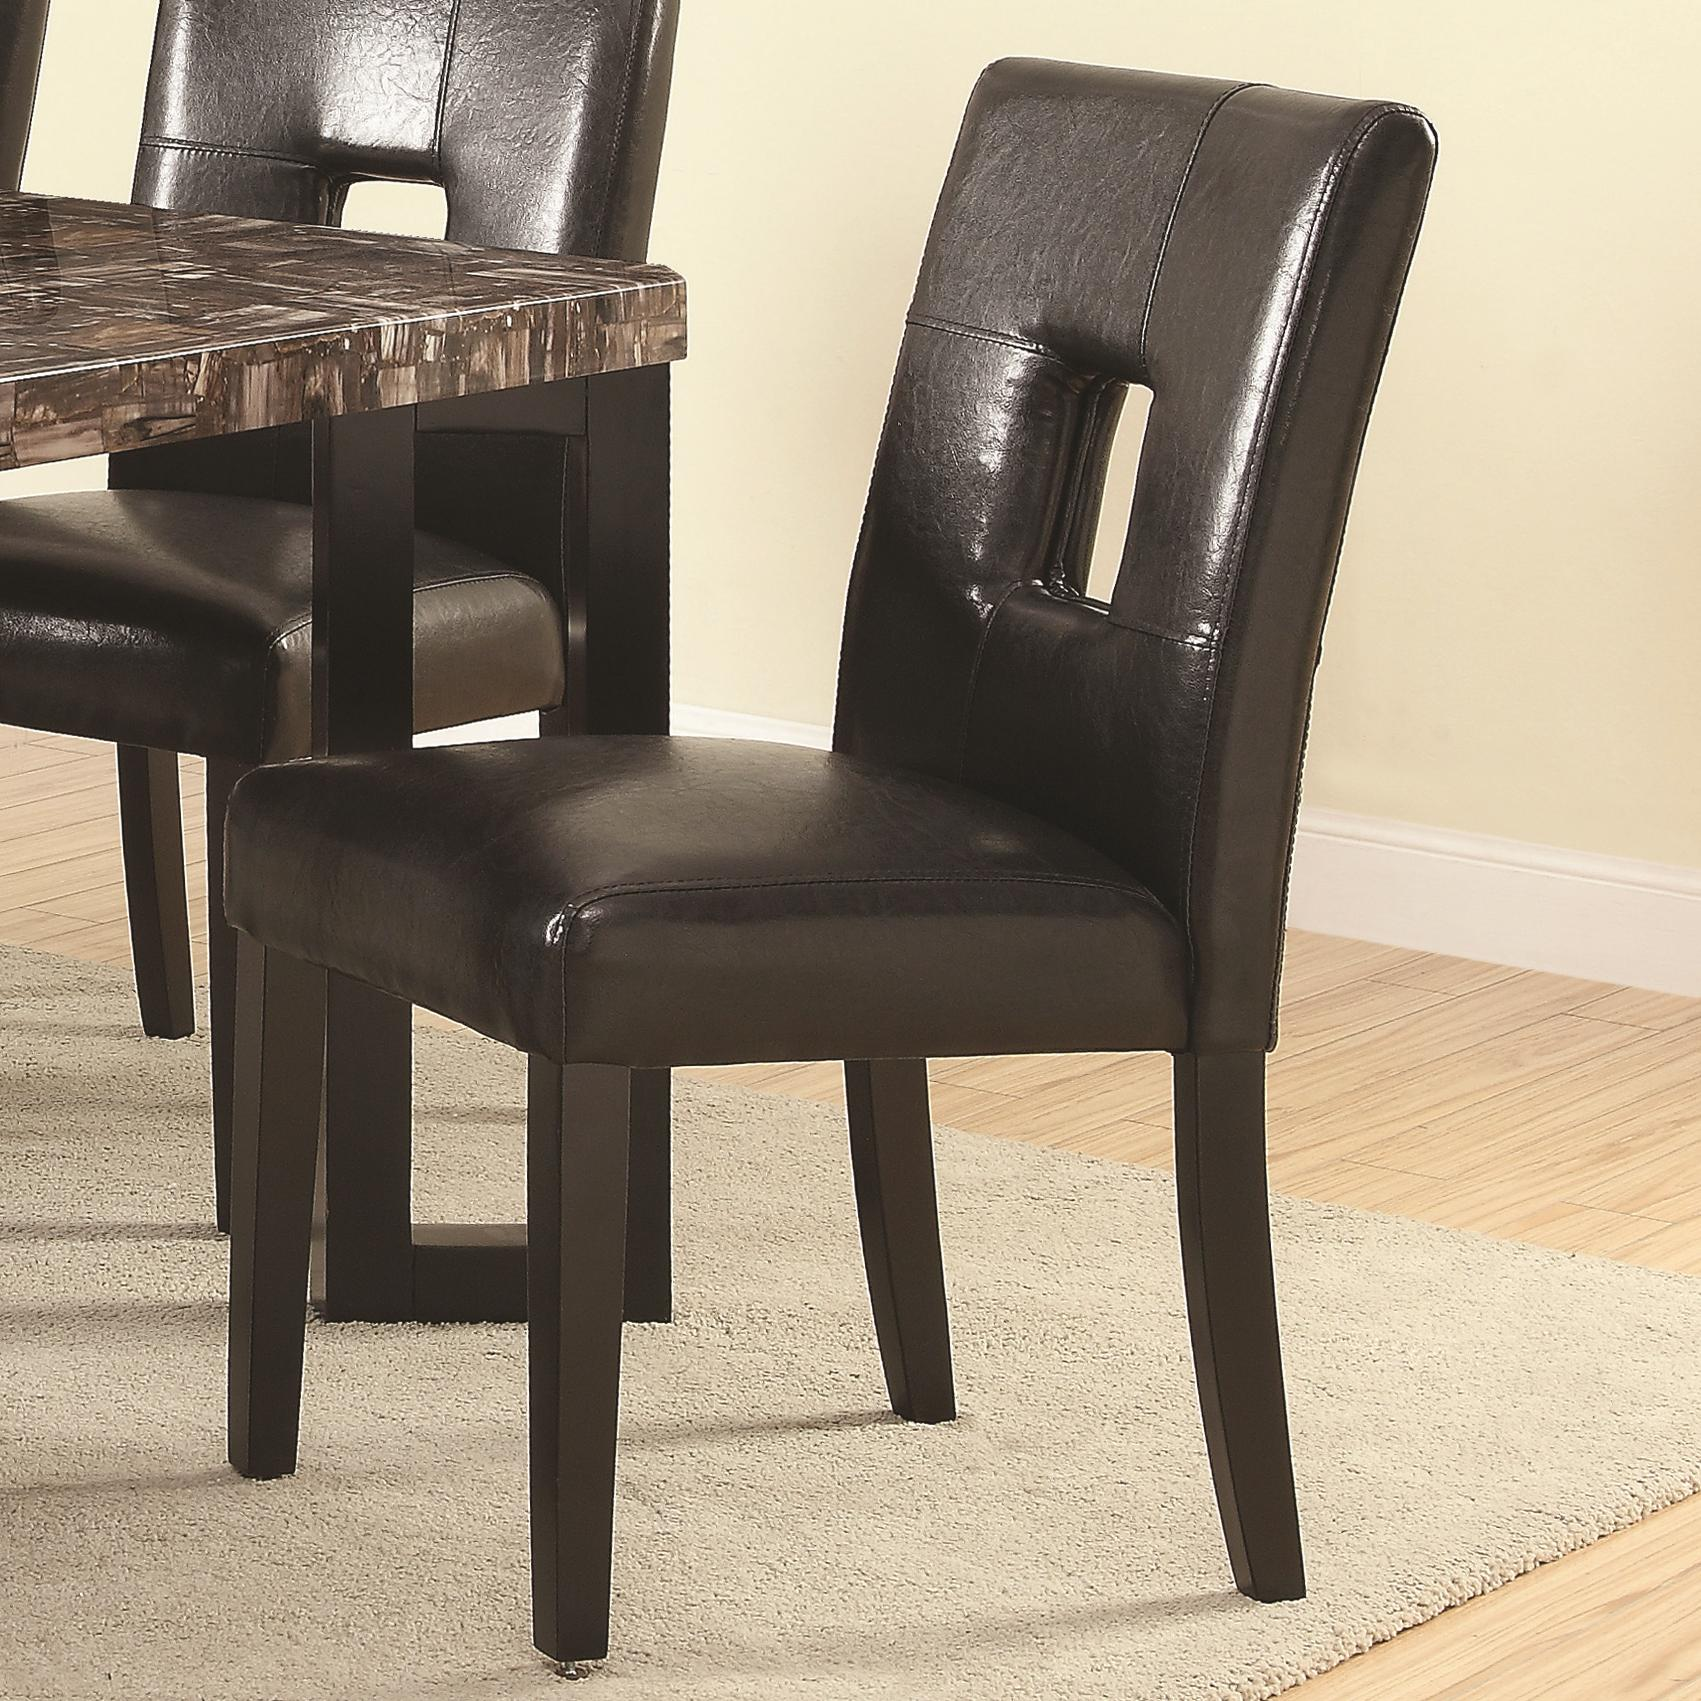 Abigail  Side Chair by Michael Alan CSR Select at Michael Alan Furniture & Design